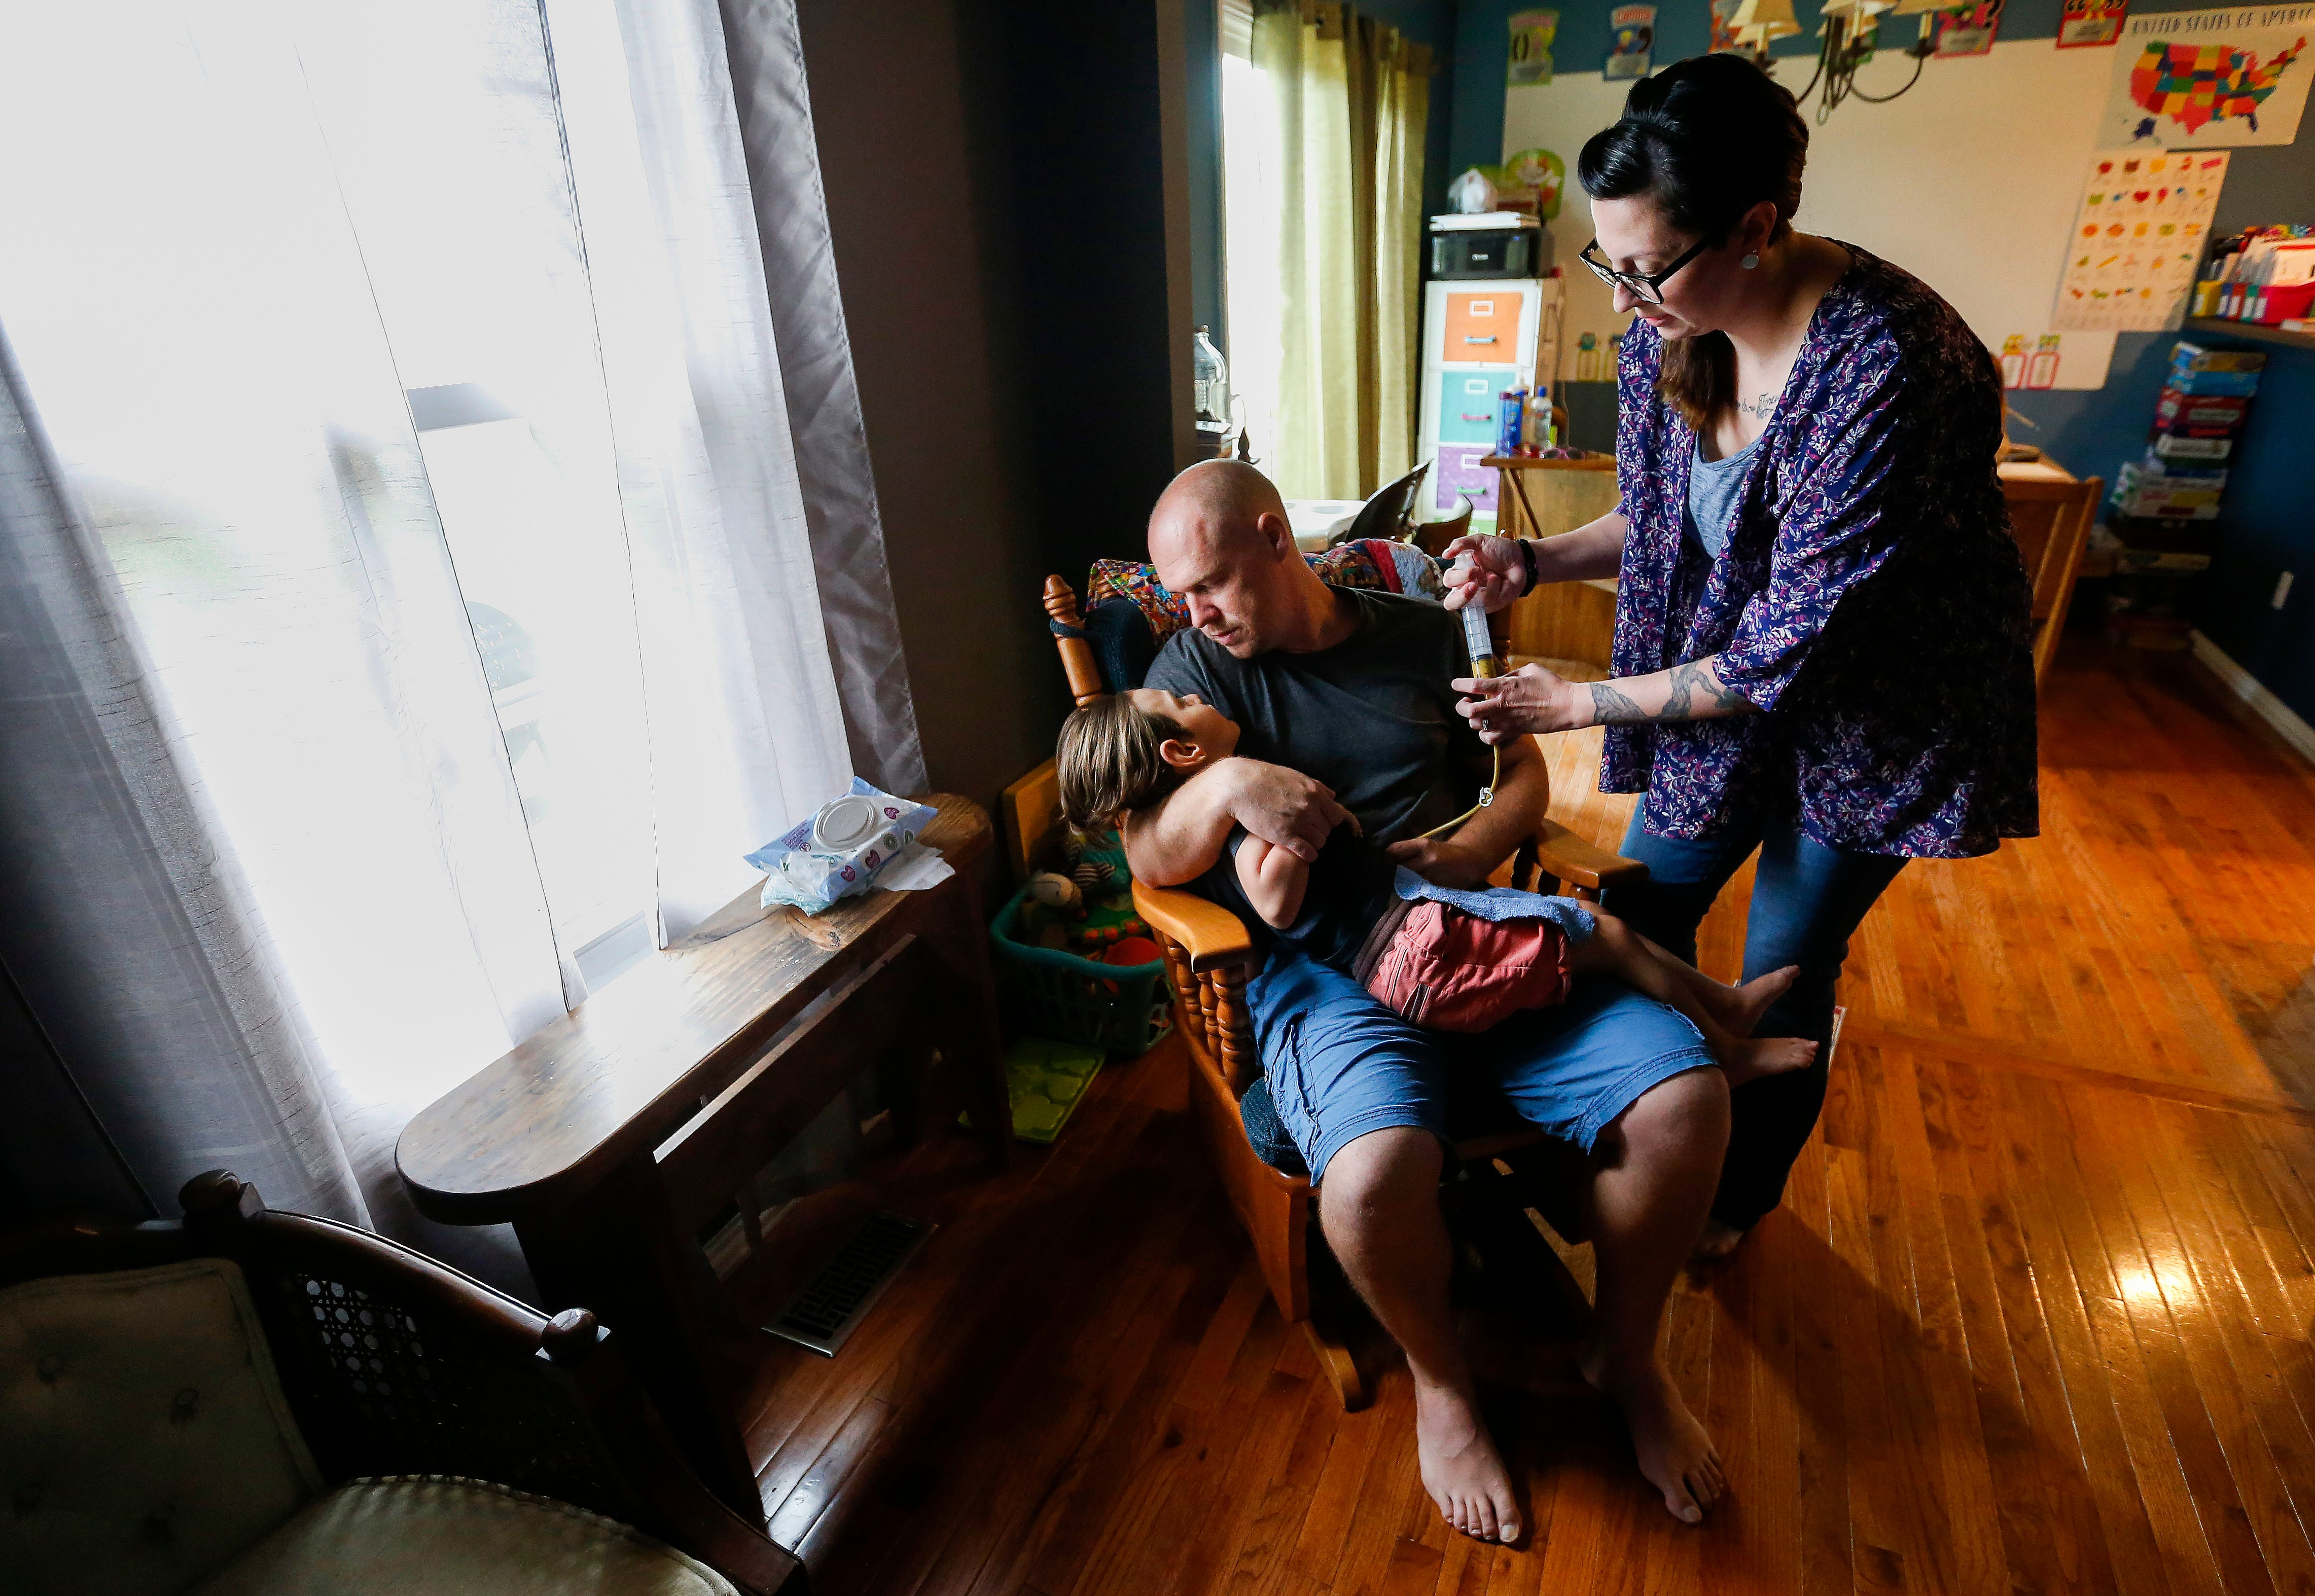 Ashley Markum Injects Food Into Her Son Aydens Feeding Tube As He Sits On His Dad